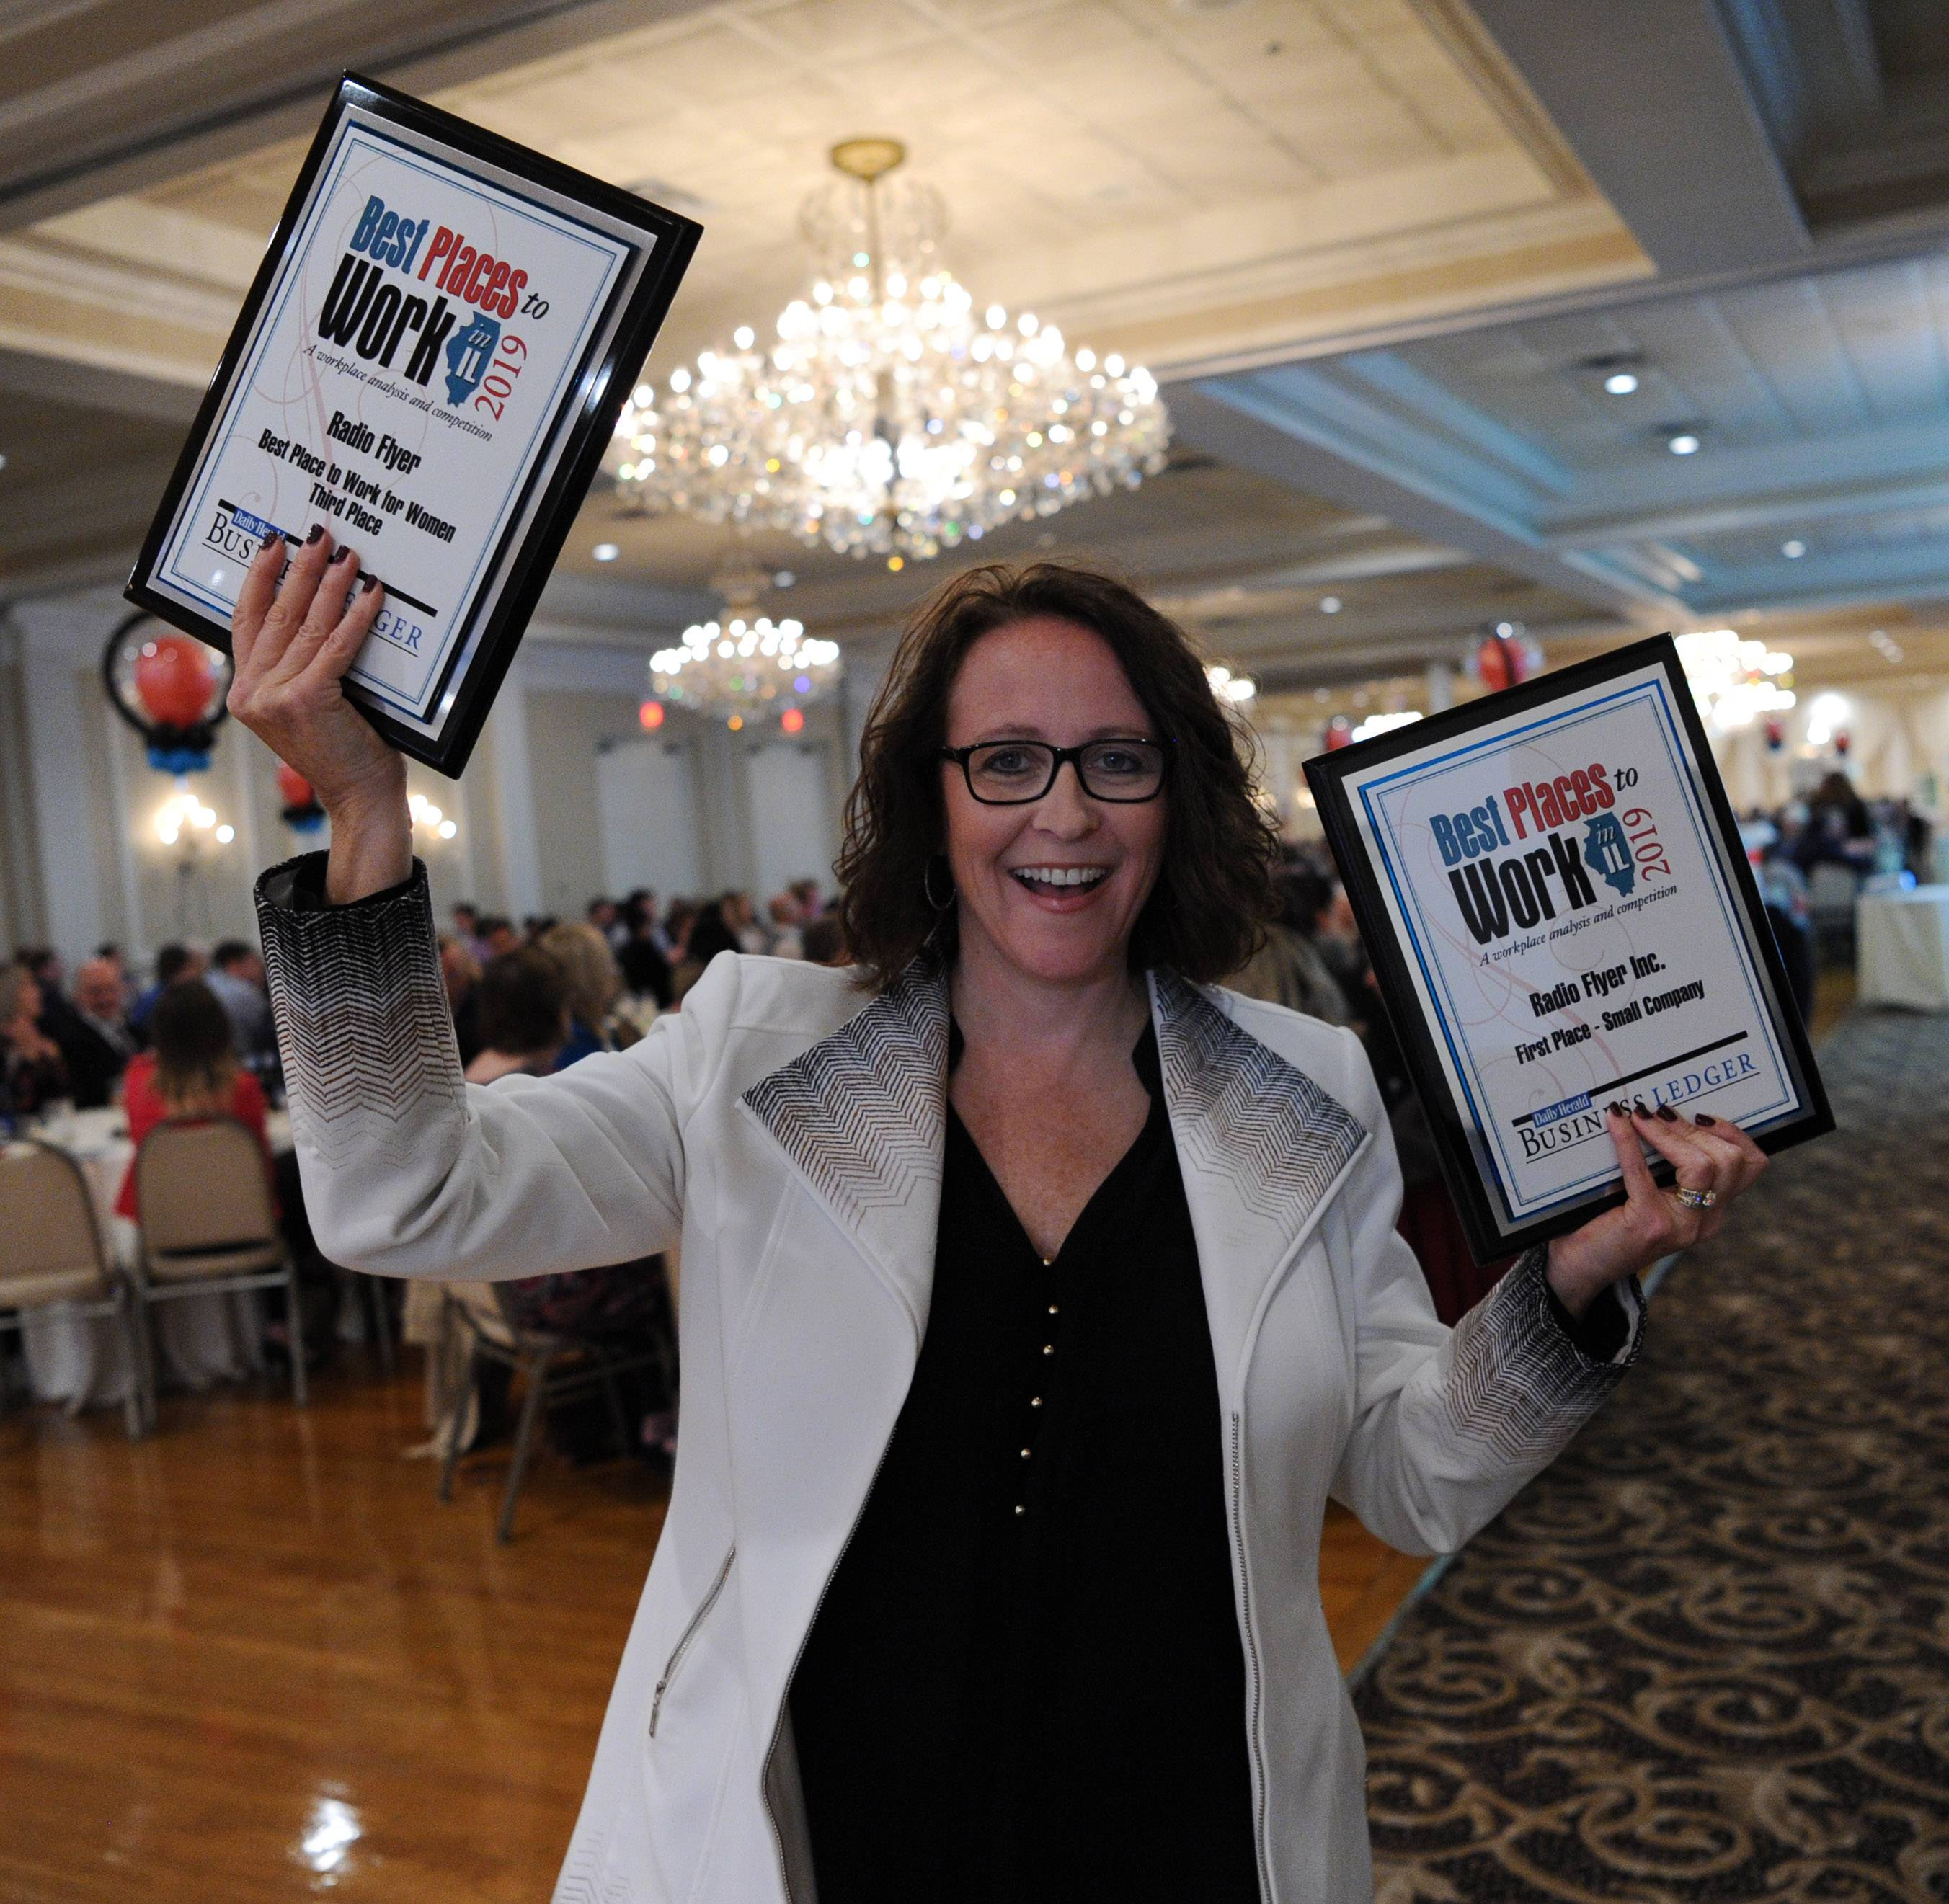 Amy Bastuga, chief people officer of Radio Flyer in Chicago, celebrates winning first in the Small Company division at the Best Places to Work in Illinois awards ceremony. The company also took third in a new category, Best Places to Work for Women.